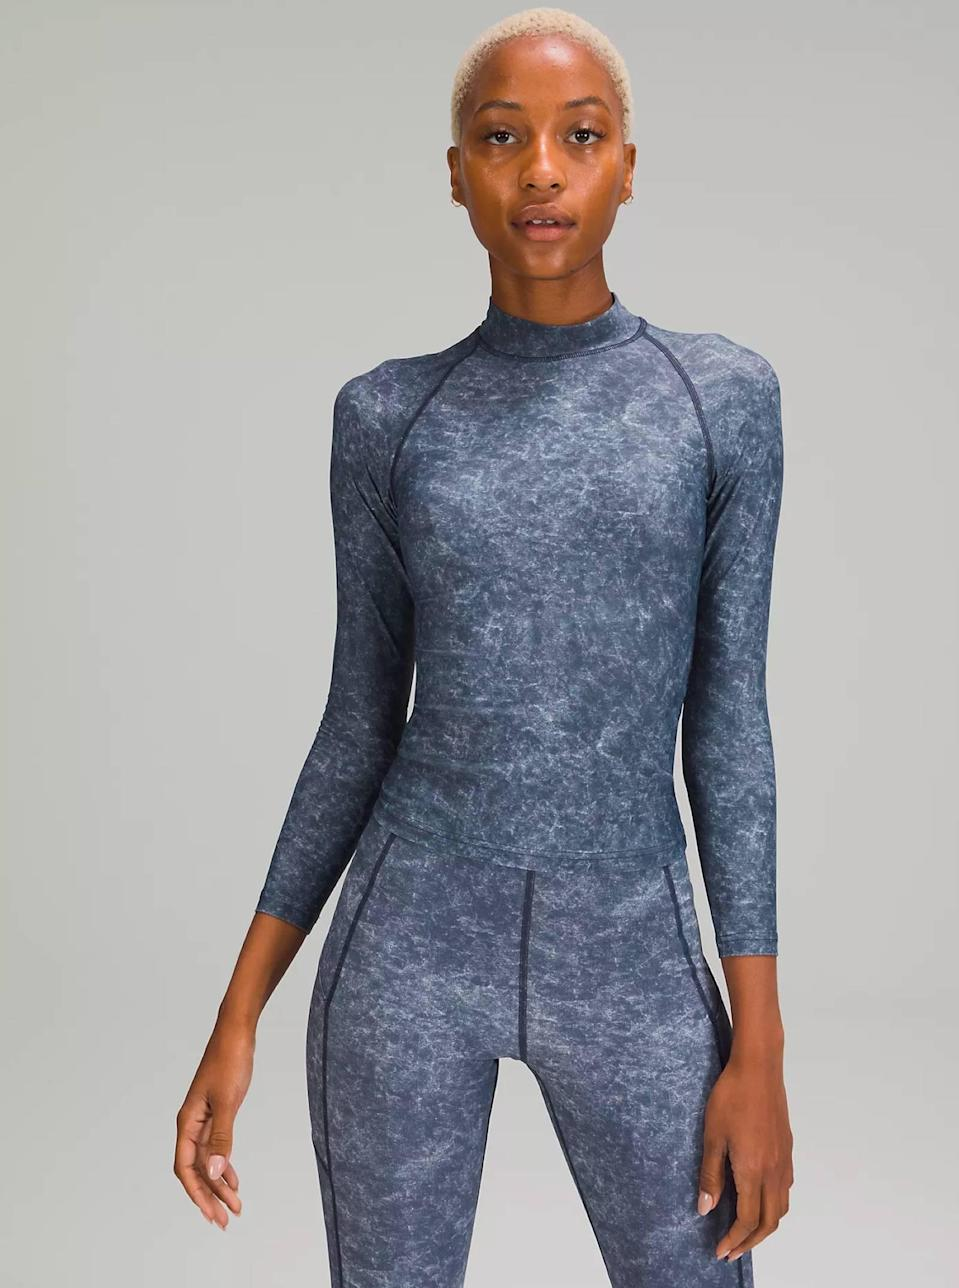 """Sleek and practical, this rash guard will carry you all through the summer. It's made of a soft material that's gentle on the skin, it dries quickly, and the hip-length cut makes it wearable outside of the pool. $78, Lululemon. <a href=""""https://shop.lululemon.com/p/tops-swim/Waterside-UVP-Long-Sleeve-Rash-Guard/_/prod10370220"""" rel=""""nofollow noopener"""" target=""""_blank"""" data-ylk=""""slk:Get it now!"""" class=""""link rapid-noclick-resp"""">Get it now!</a>"""